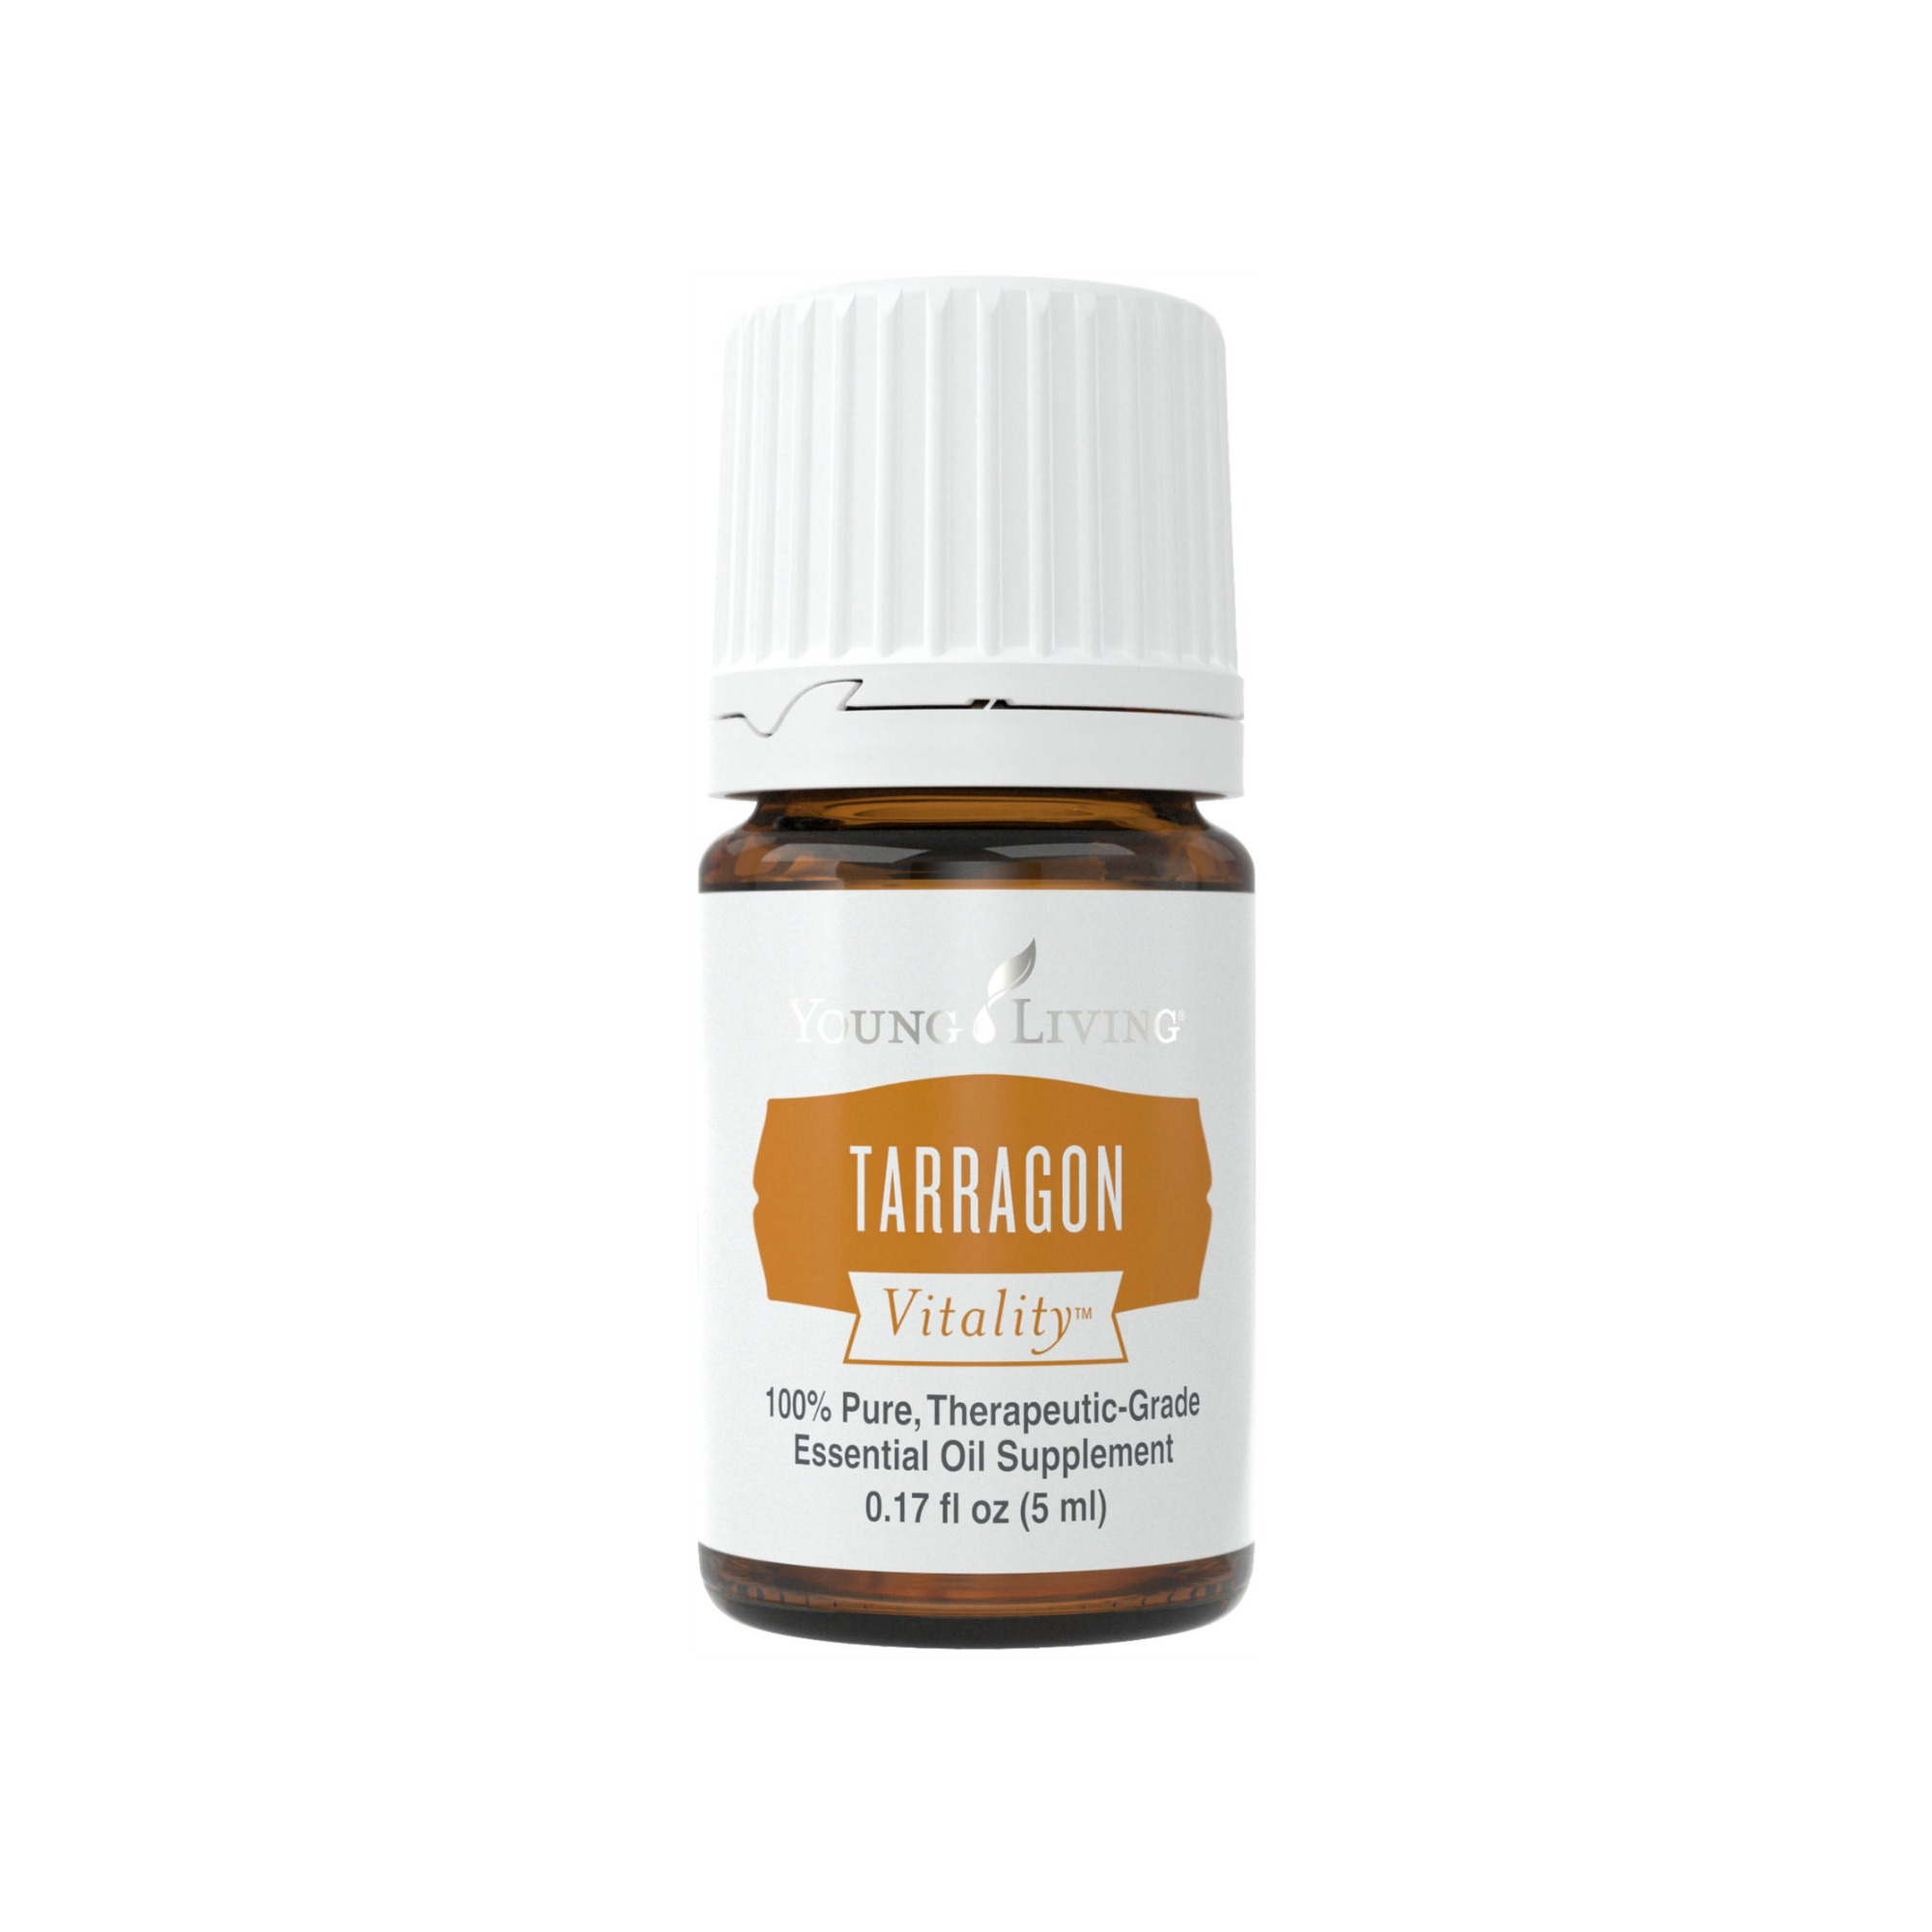 TARRAGON VITALITY    Tarragon is considered one of the four key seasoning ingredients in traditional French cooking. Native to southern Europe, Tarragon Vitality™ is steam distilled from the leaves of the plant and features a distinctly strong, herbaceous flavor. It goes well with fish, meat, soups and stews and is often used in tomato and egg dishes.   Click here   to learn more about this product.